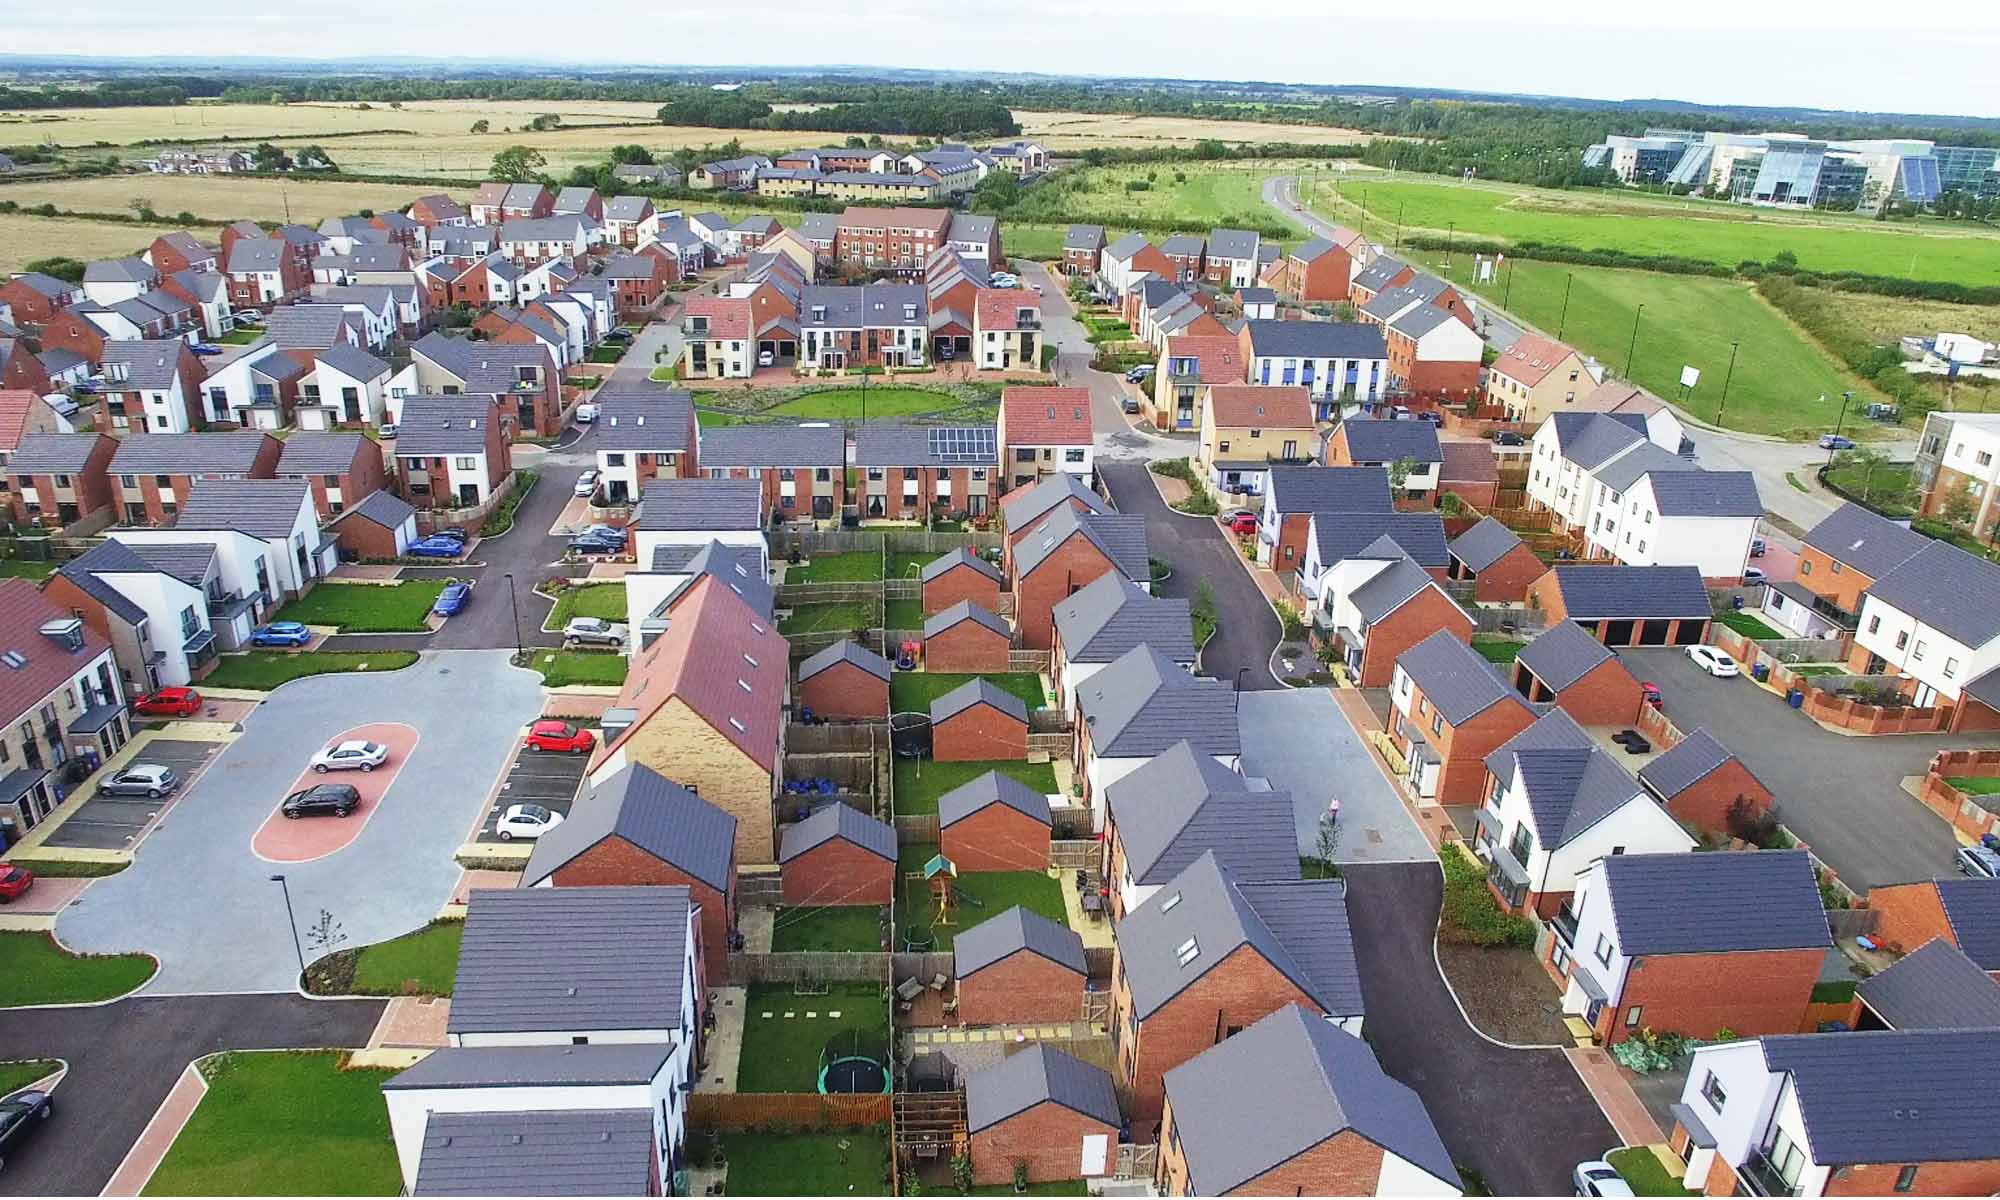 New Build Houses in the UK